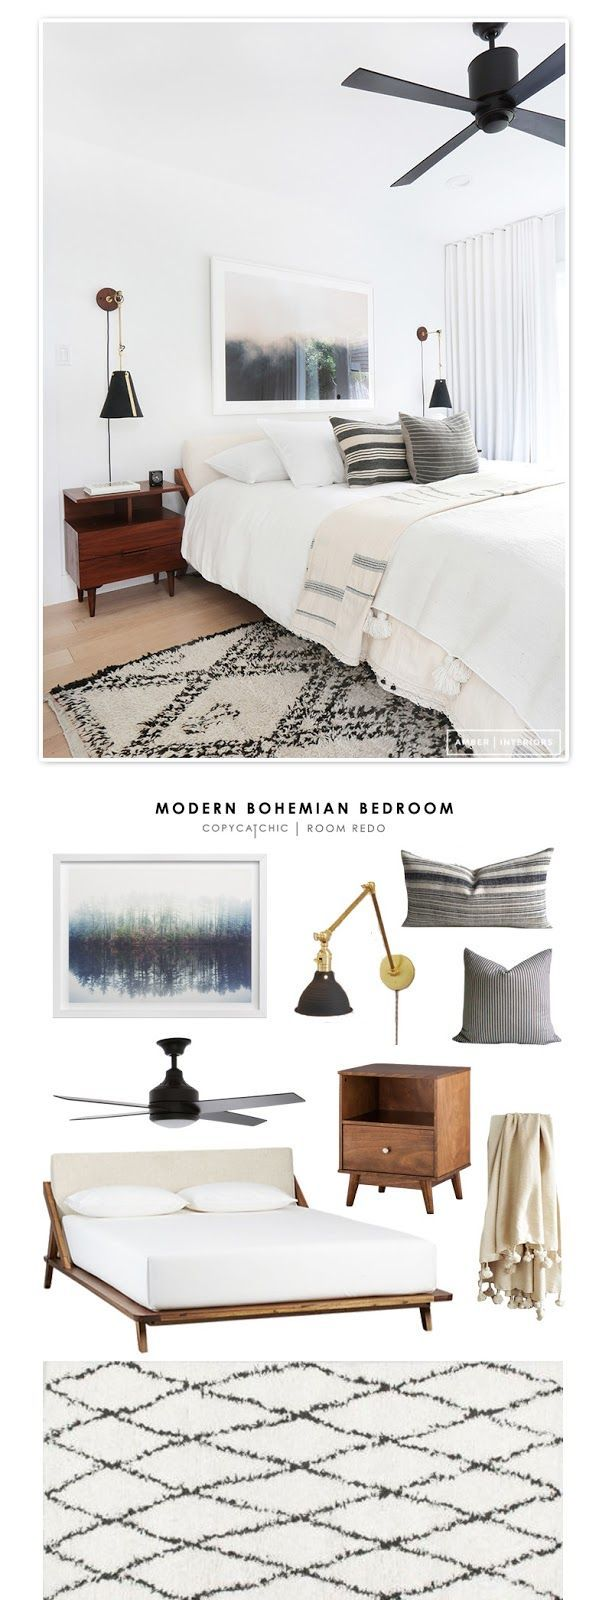 Mo mo modern beach bedrooms - Copy Cat Chic Room Redo Modern Bohemian Bedroomsmodern